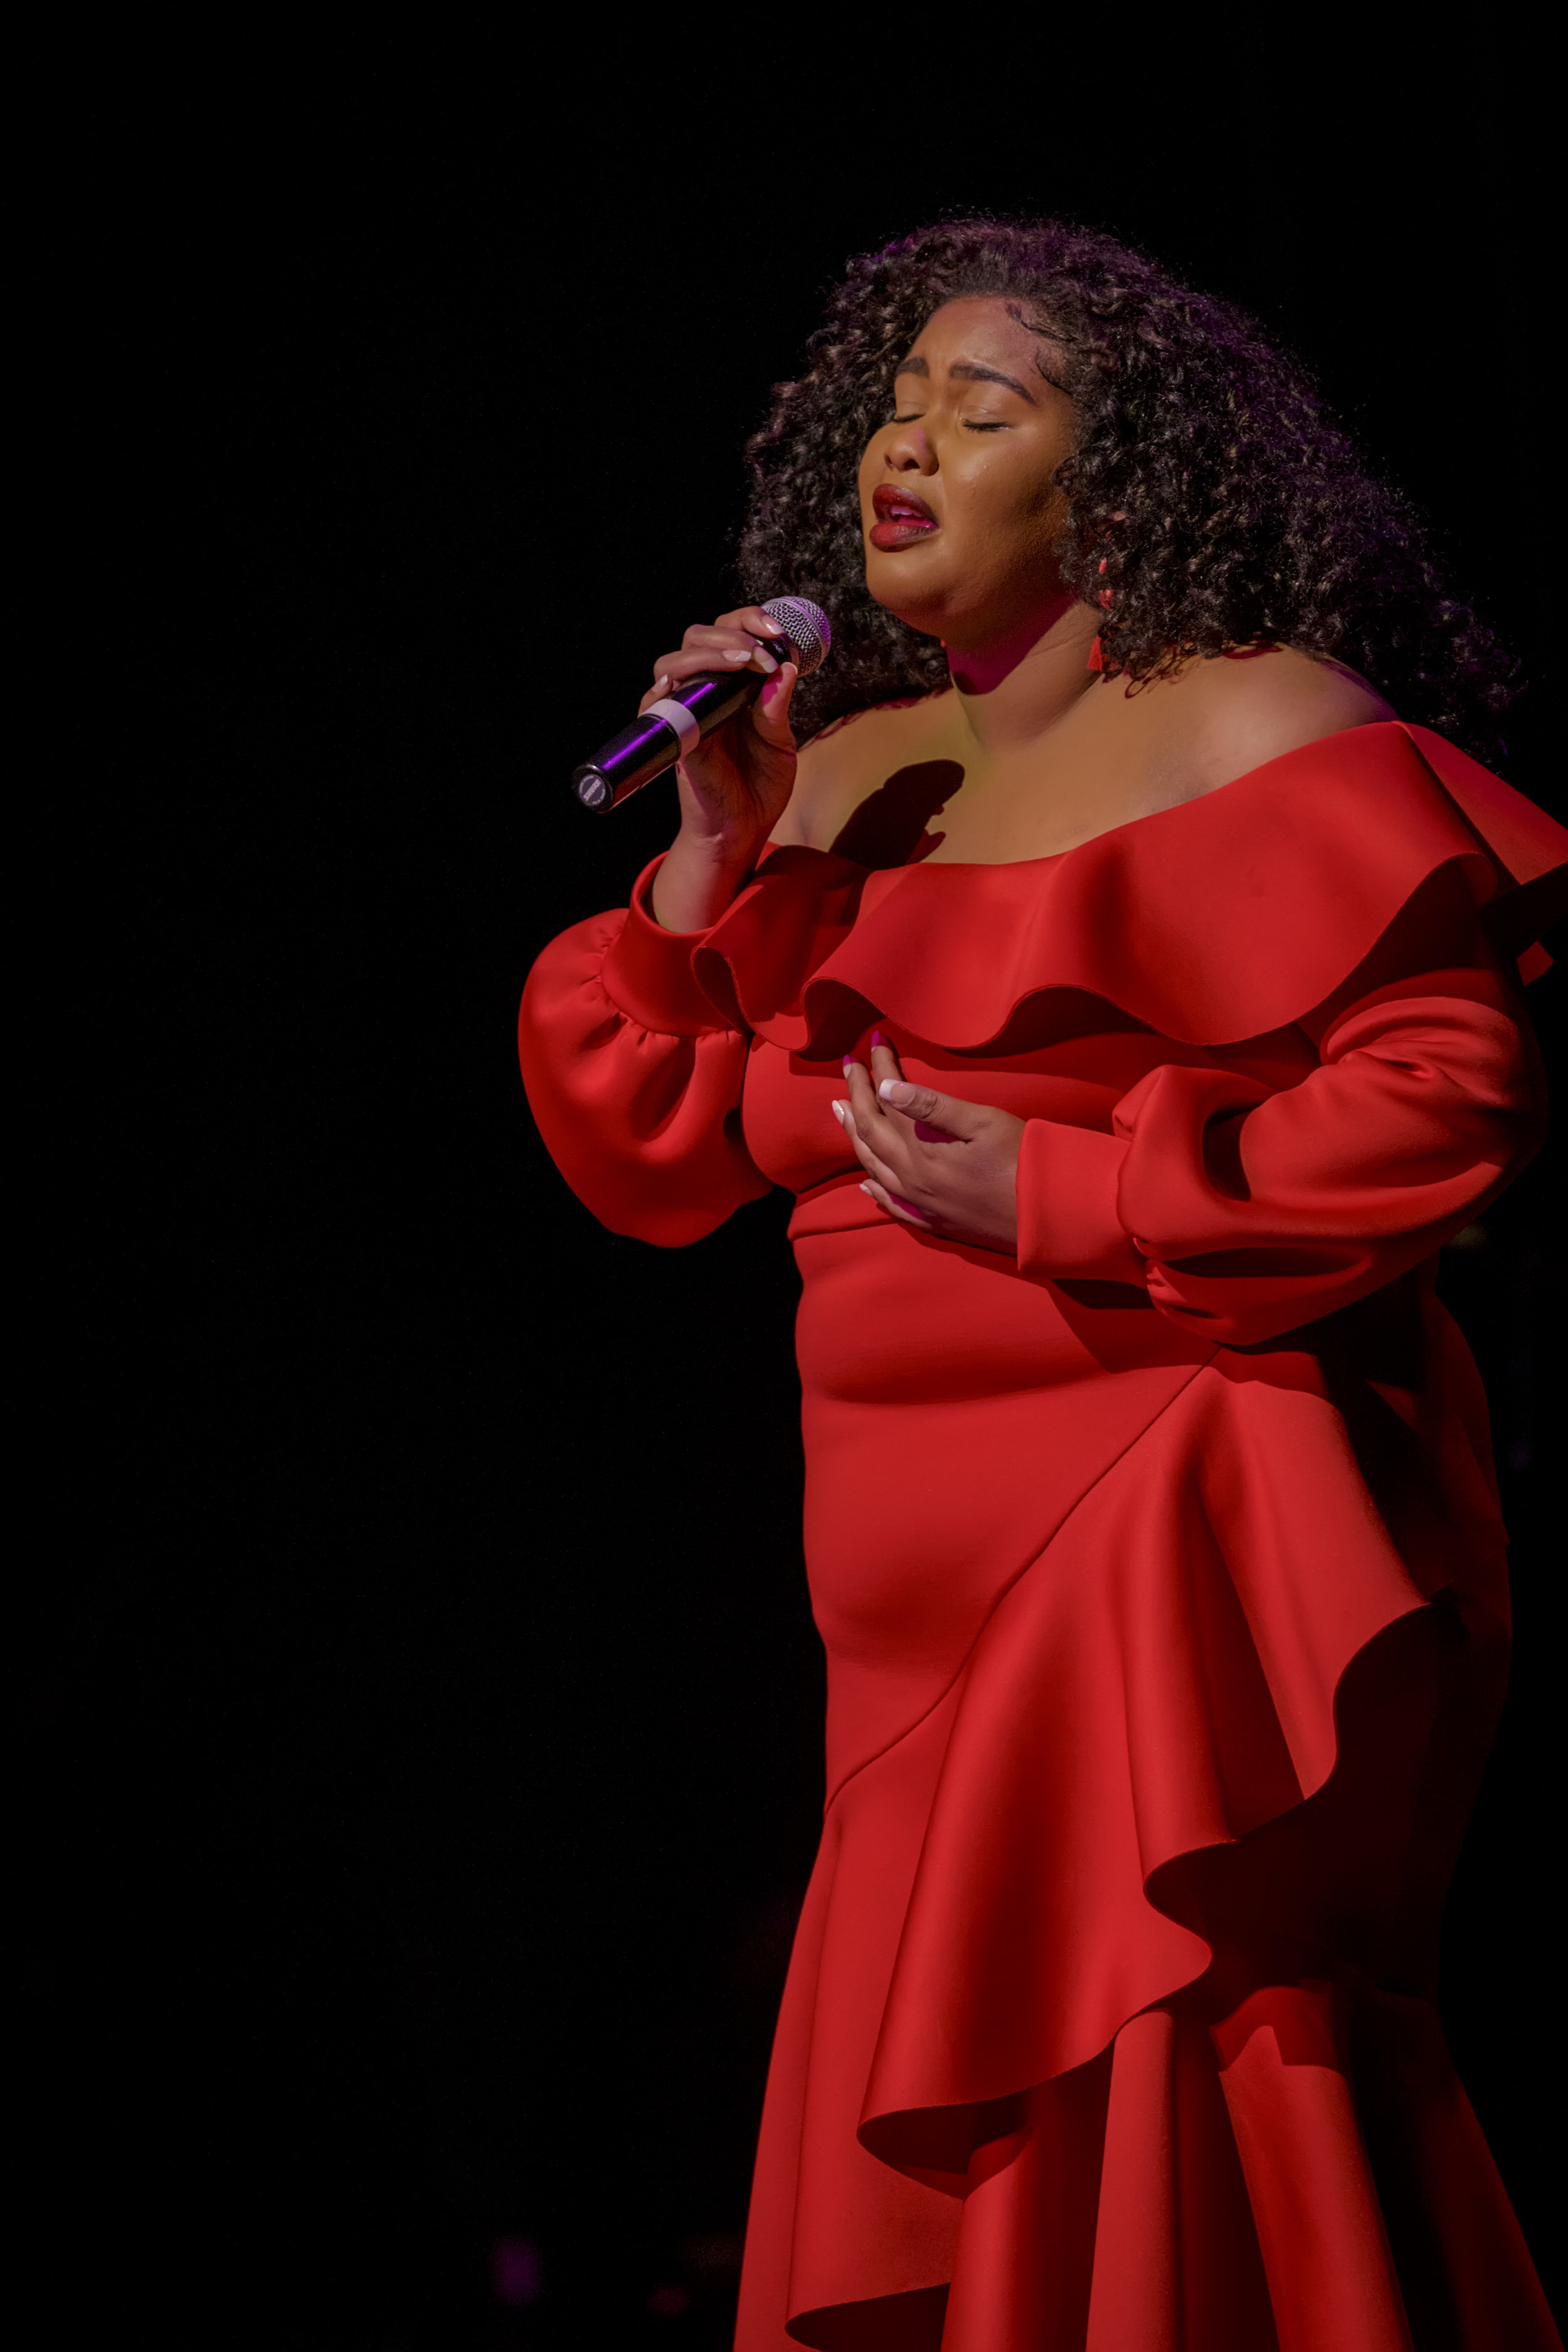 IMAGES] Ladies of Song Vocal Competition - The 21st Annual